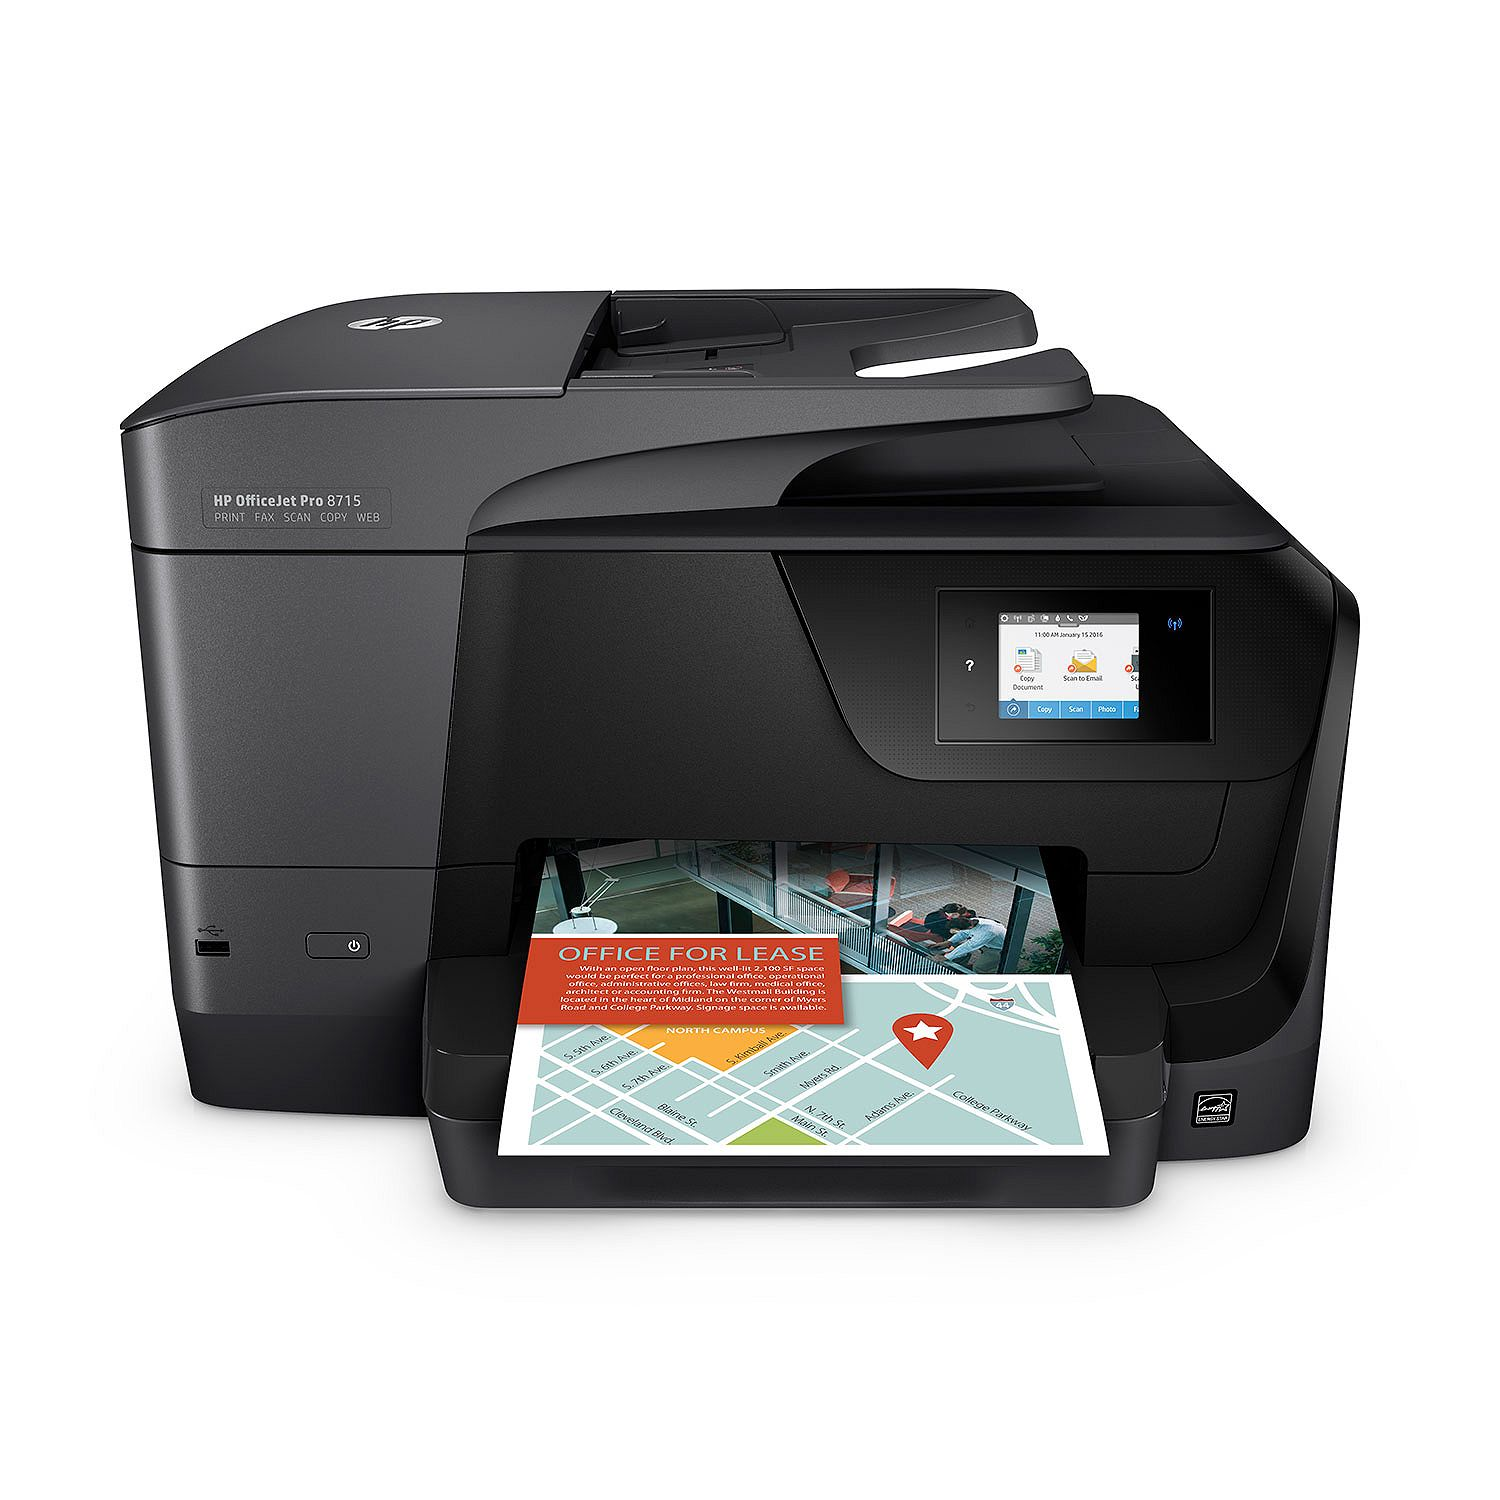 HP OfficeJet Pro 8715 All-in-One Printer (Certified Refurbished) by HP